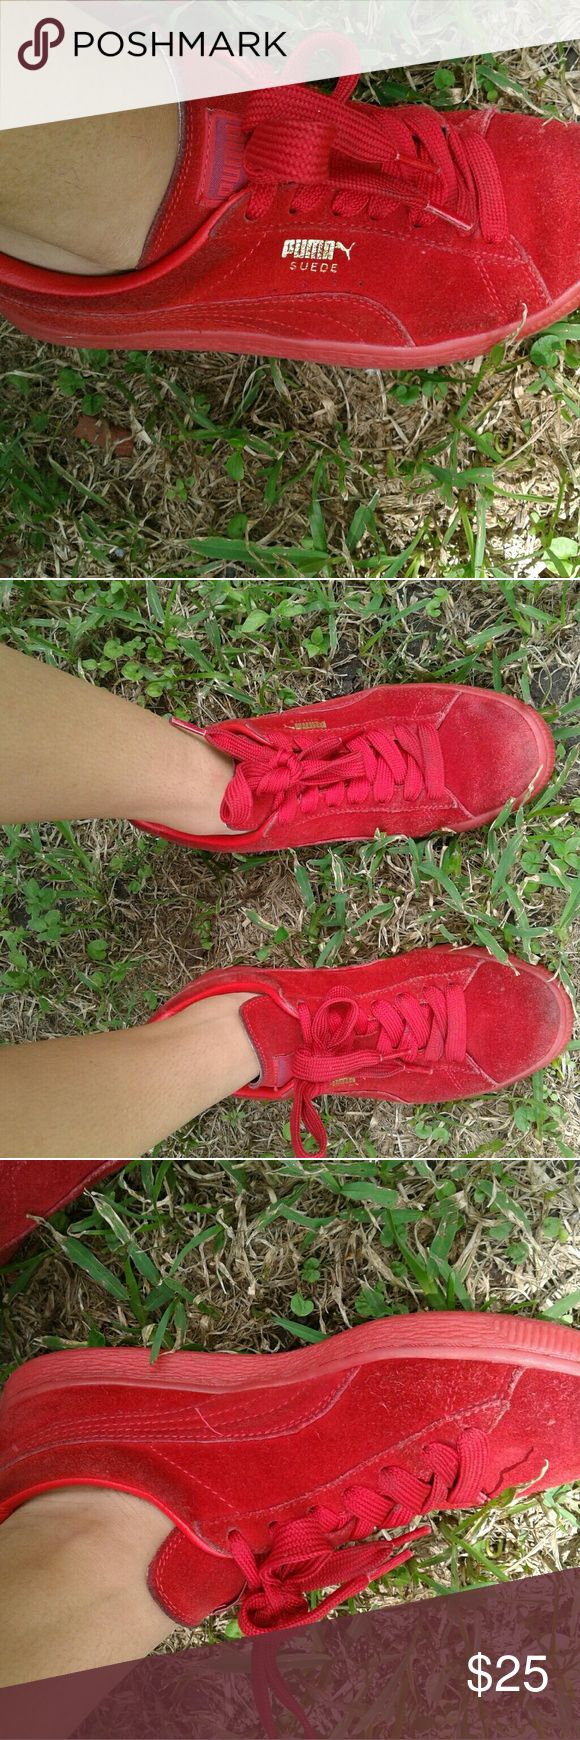 Red Puma Suede! These shoes show some wear at the top but would still be a great purchase as they are currently in style. Puma Shoes Sneakers